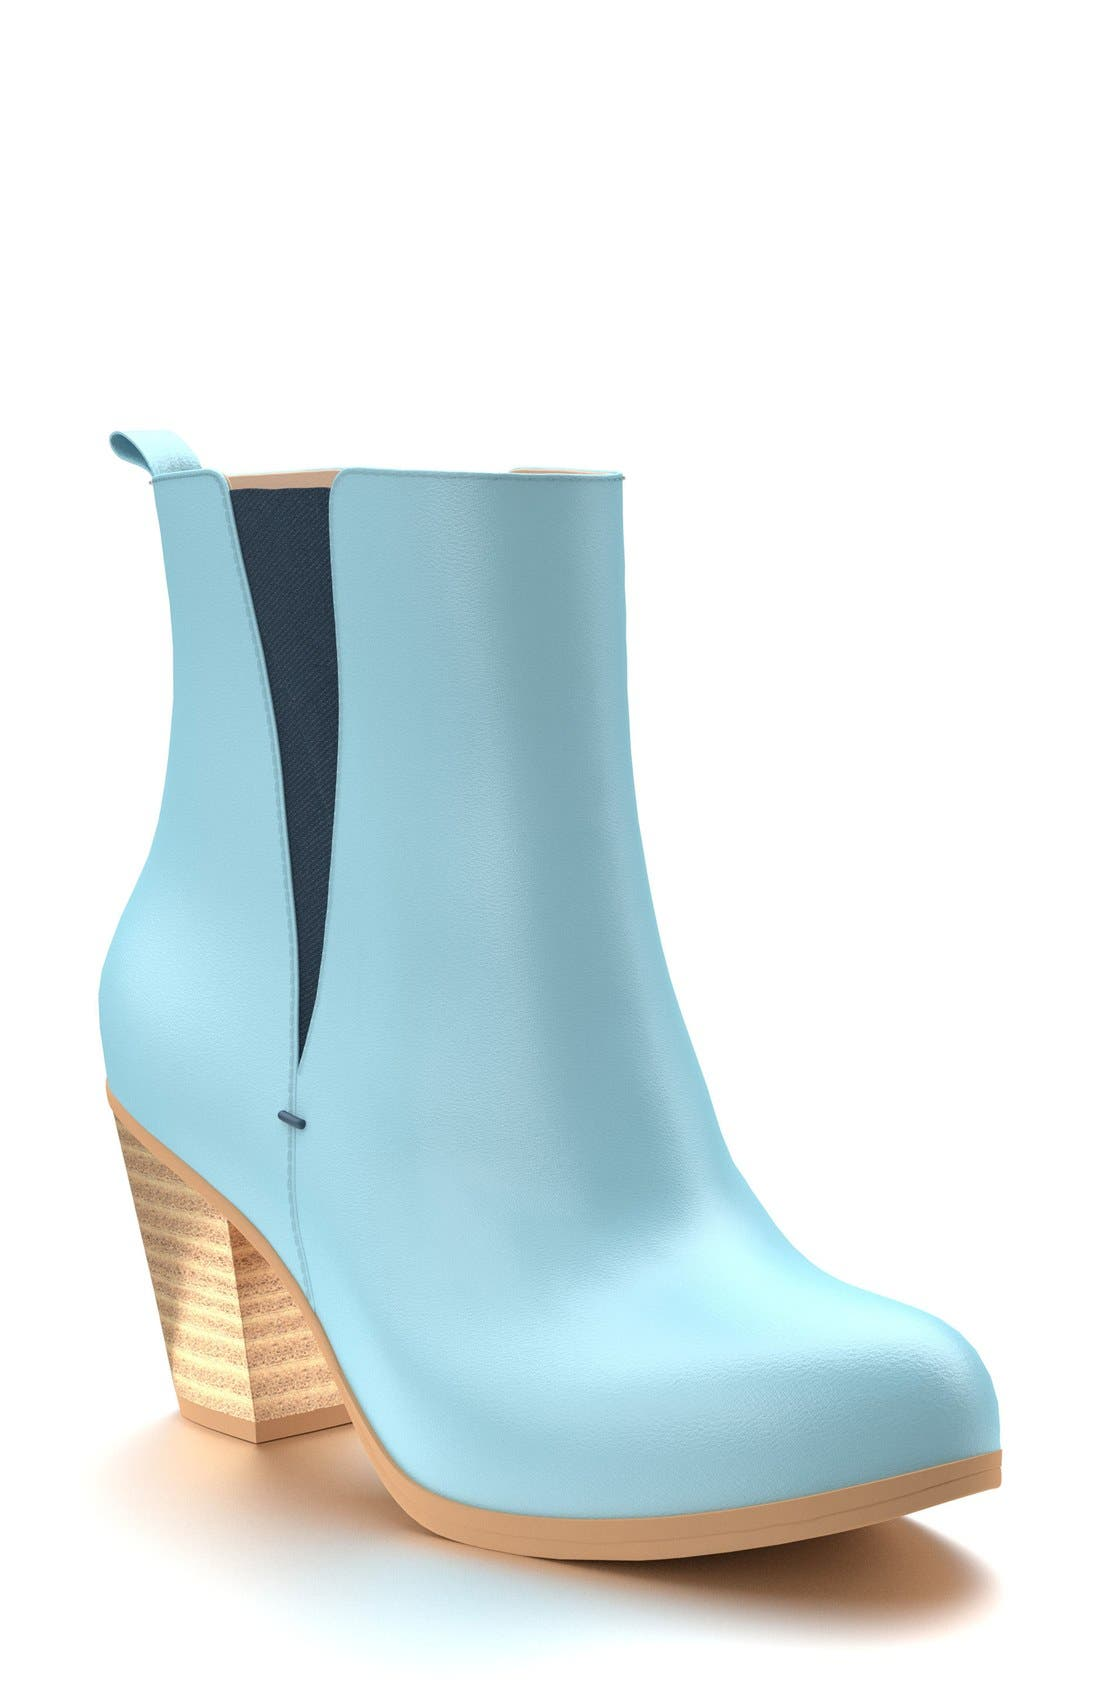 Shoes of Prey Block Heel Chelsea Boot (Women)